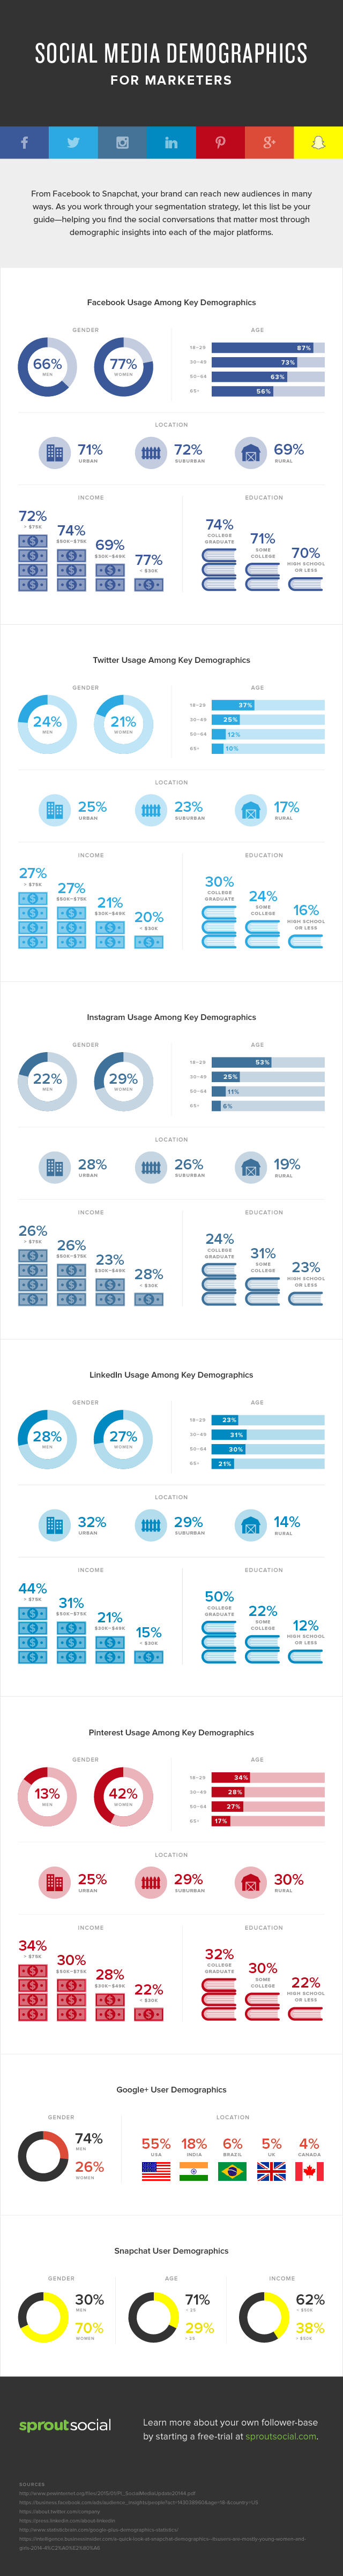 Social-Demographics_infographic